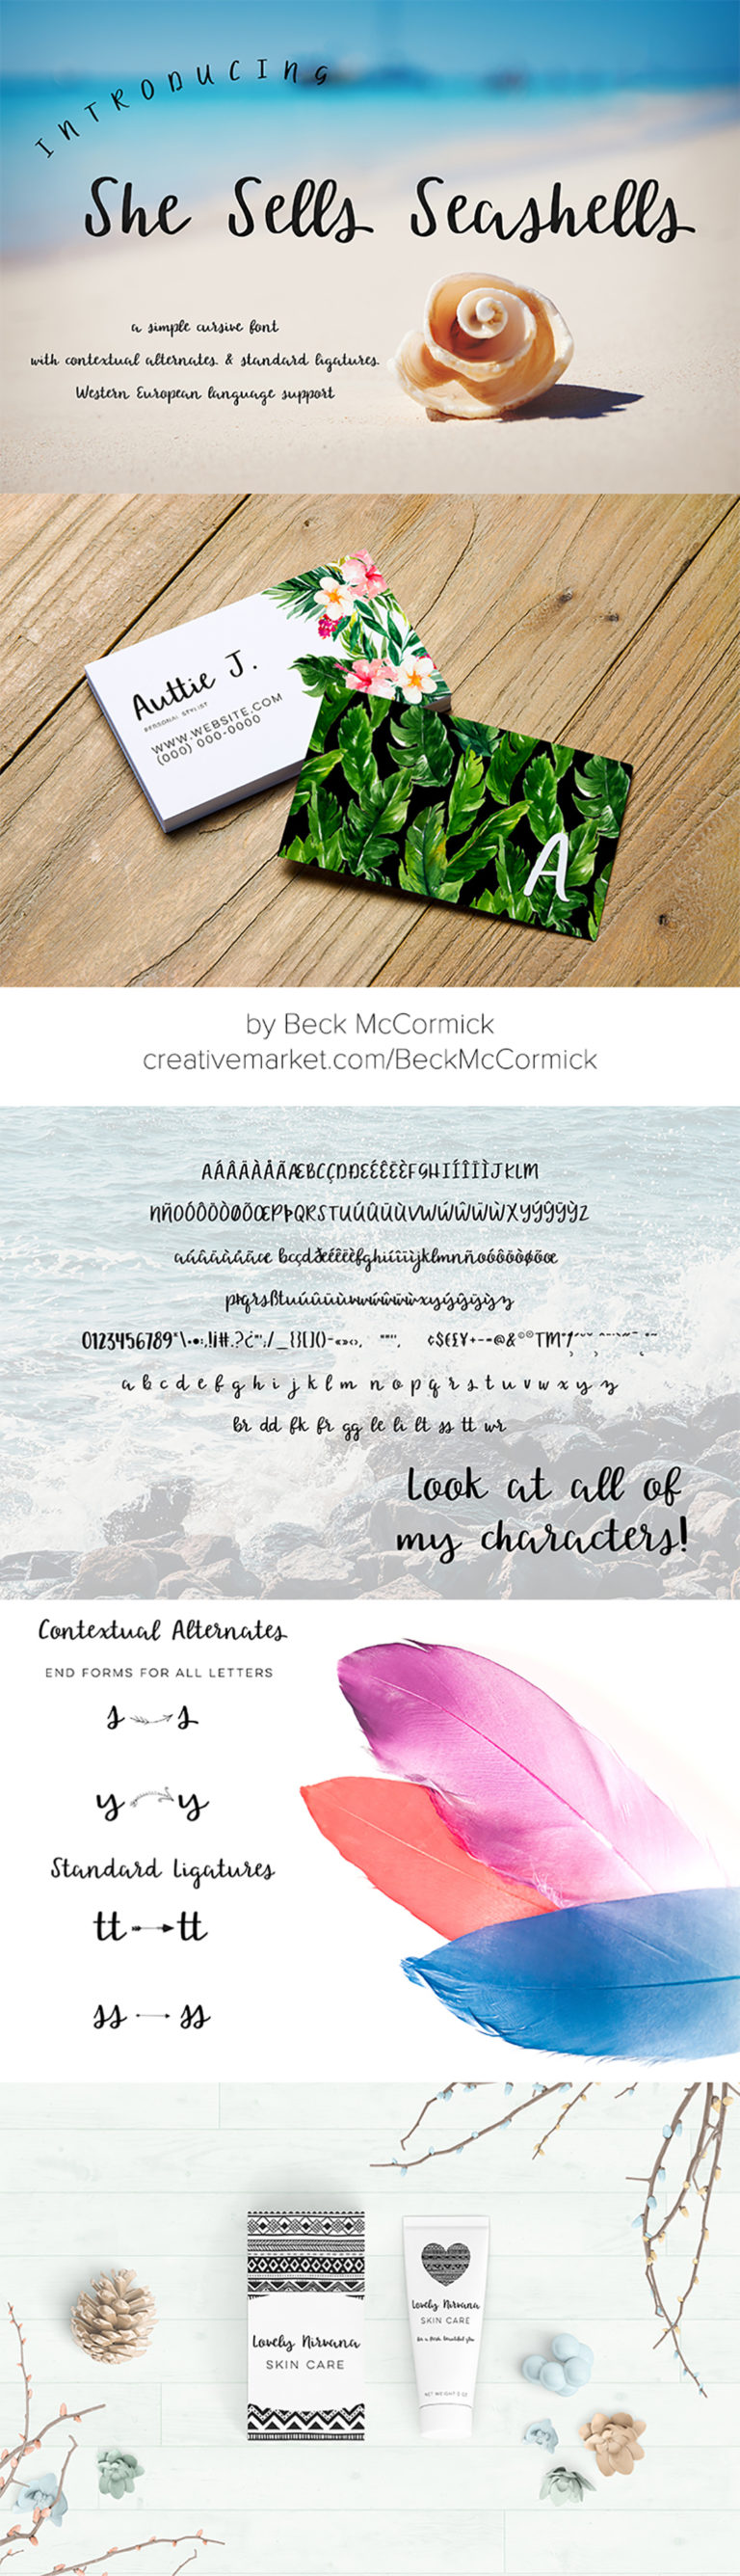 The Crafters Font Bundle - font display30 -